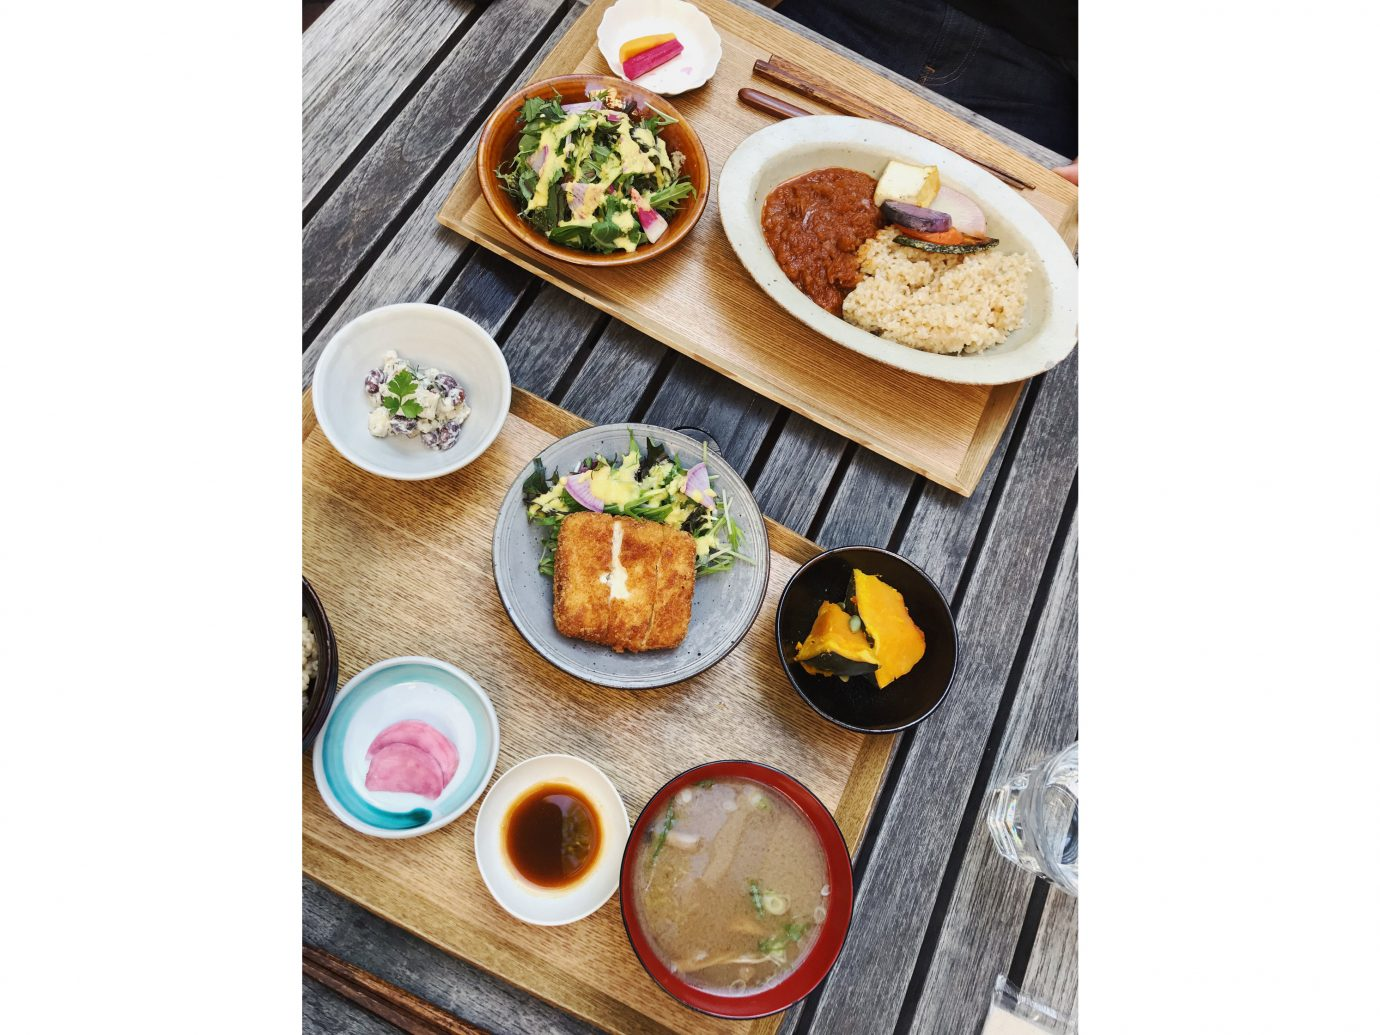 Influencers + Tastemakers Japan Photo Diary Tokyo food meal dish cuisine plate lunch breakfast asian food brunch different side dish recipe sushi appetizer comfort food vegetarian food plate lunch